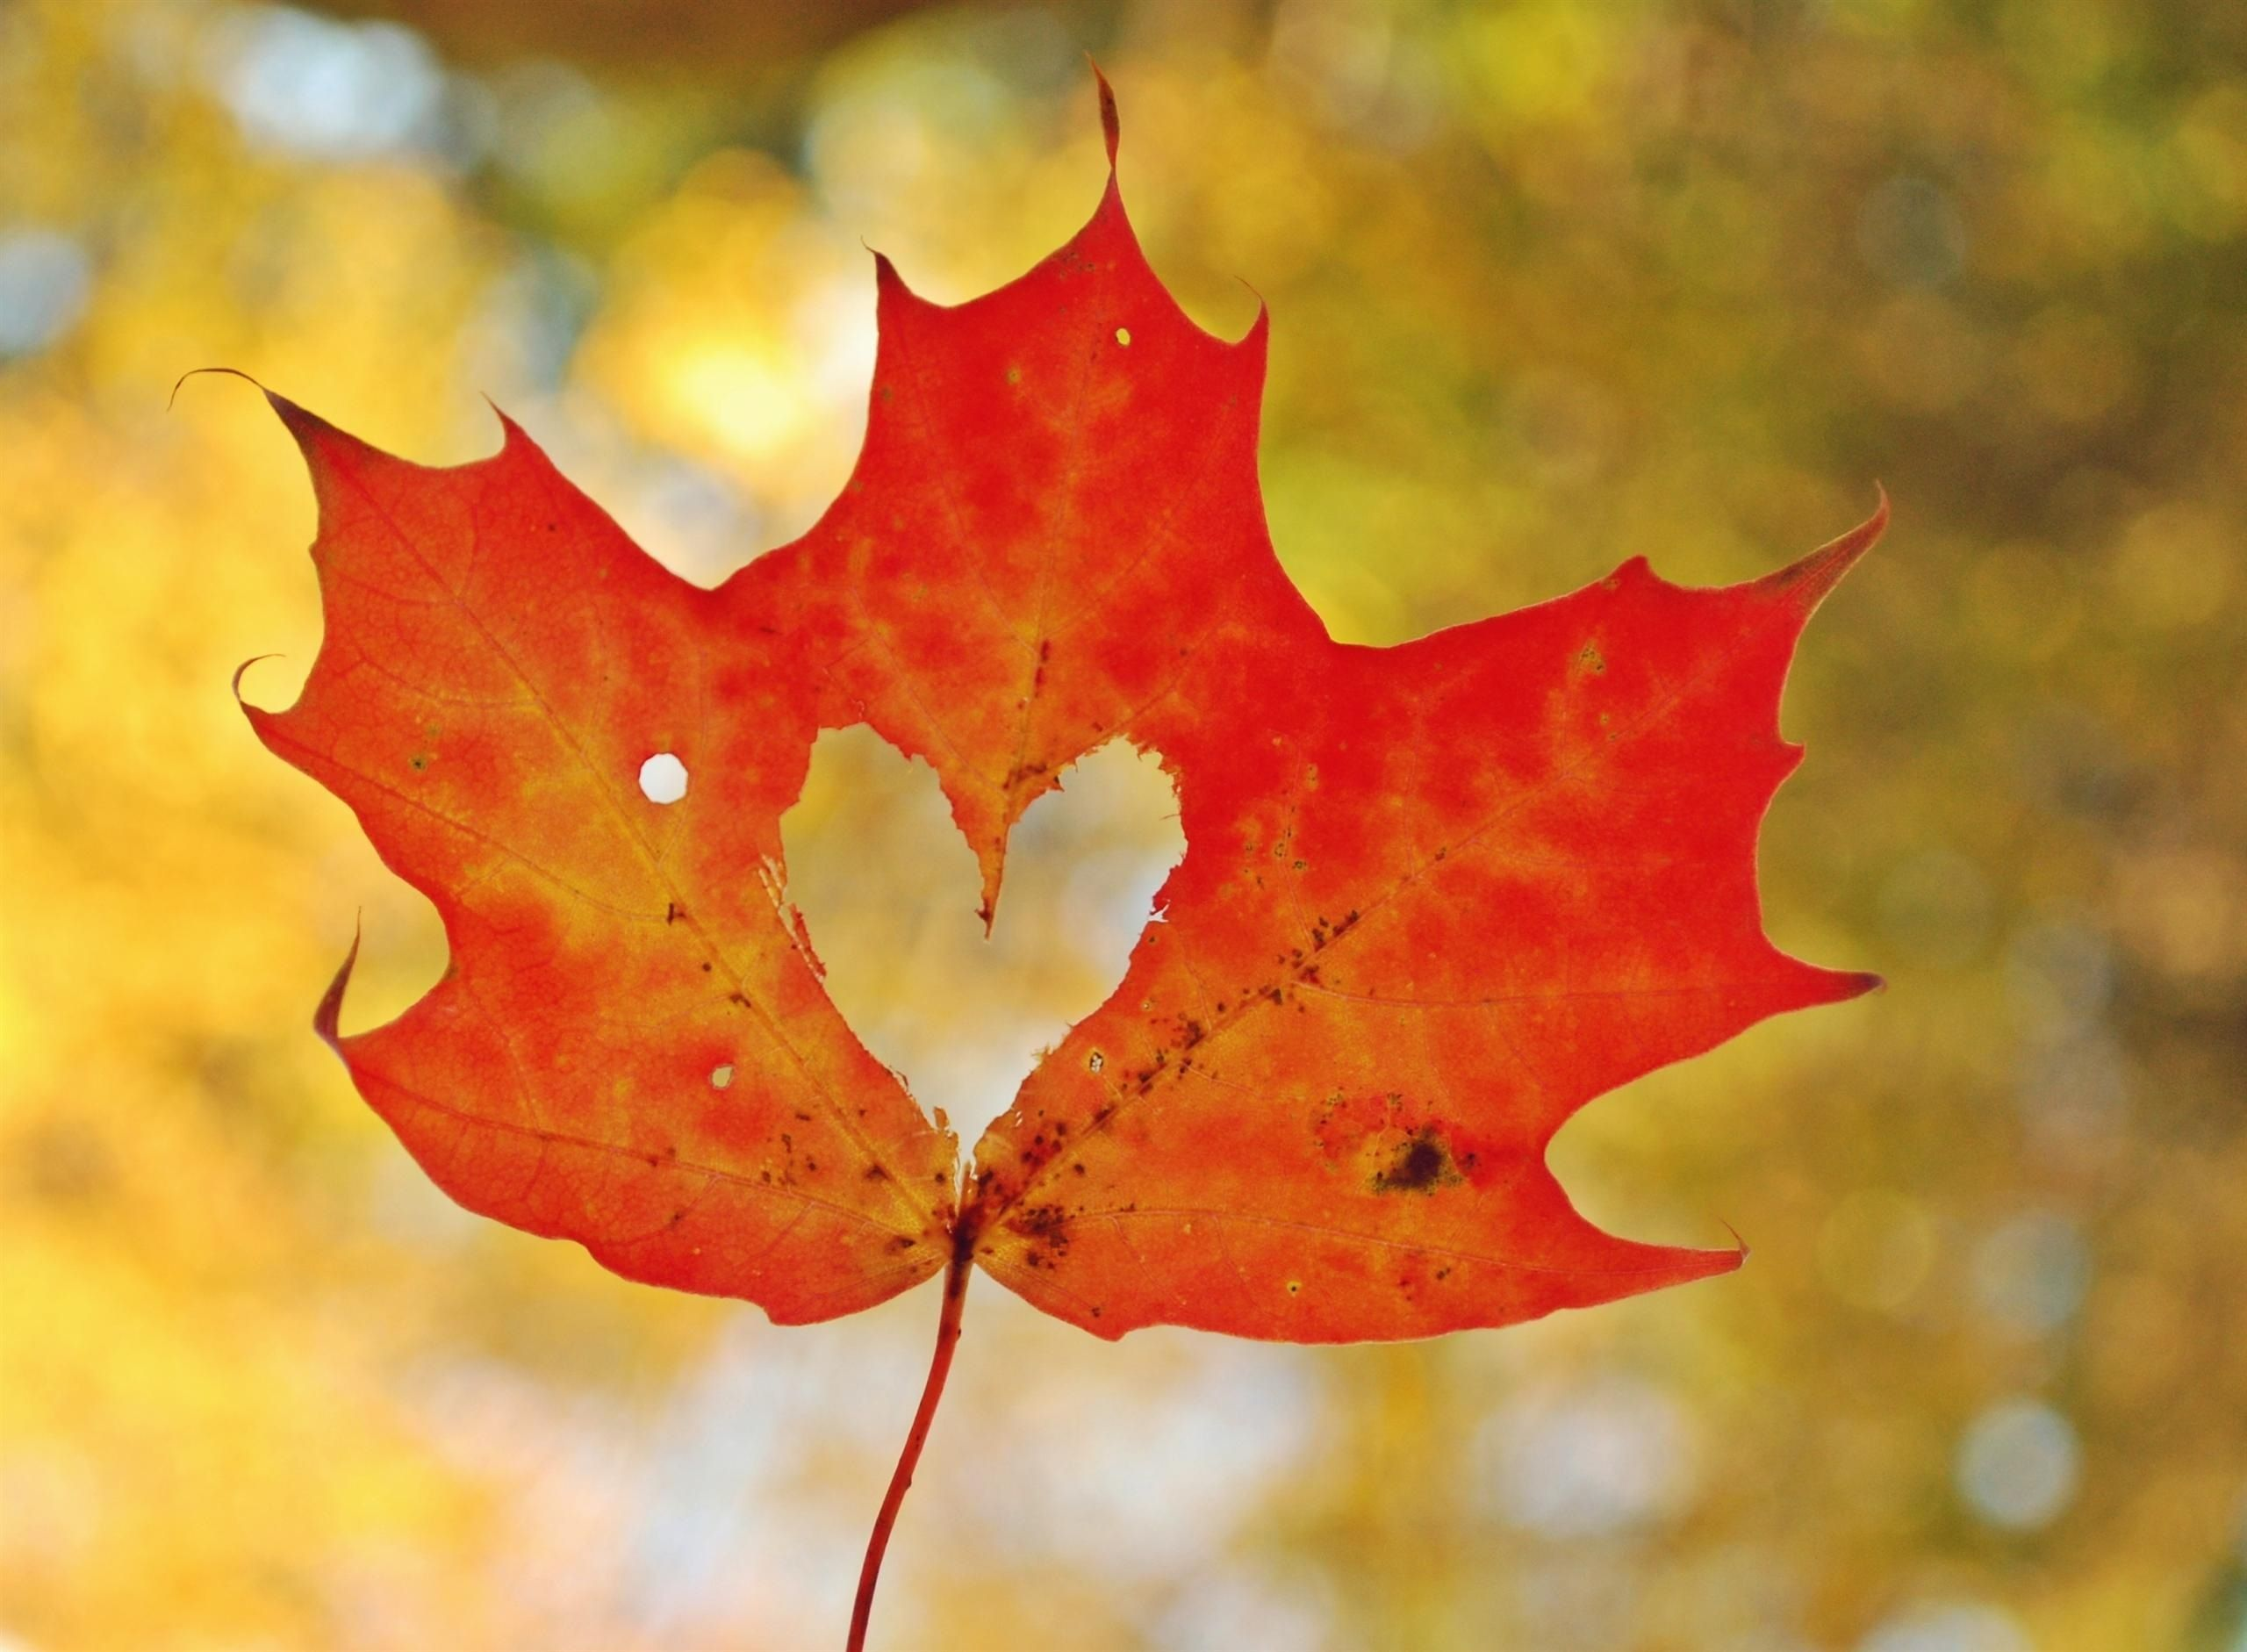 From the book where you might see the beautiful autumn leaves - Fall Is A Favorite Season For Many Of Us Who Can Resist The Beauty Of The Orange Glow Of Pumpkins The Falling Leaves And The Much Anticipated Cool